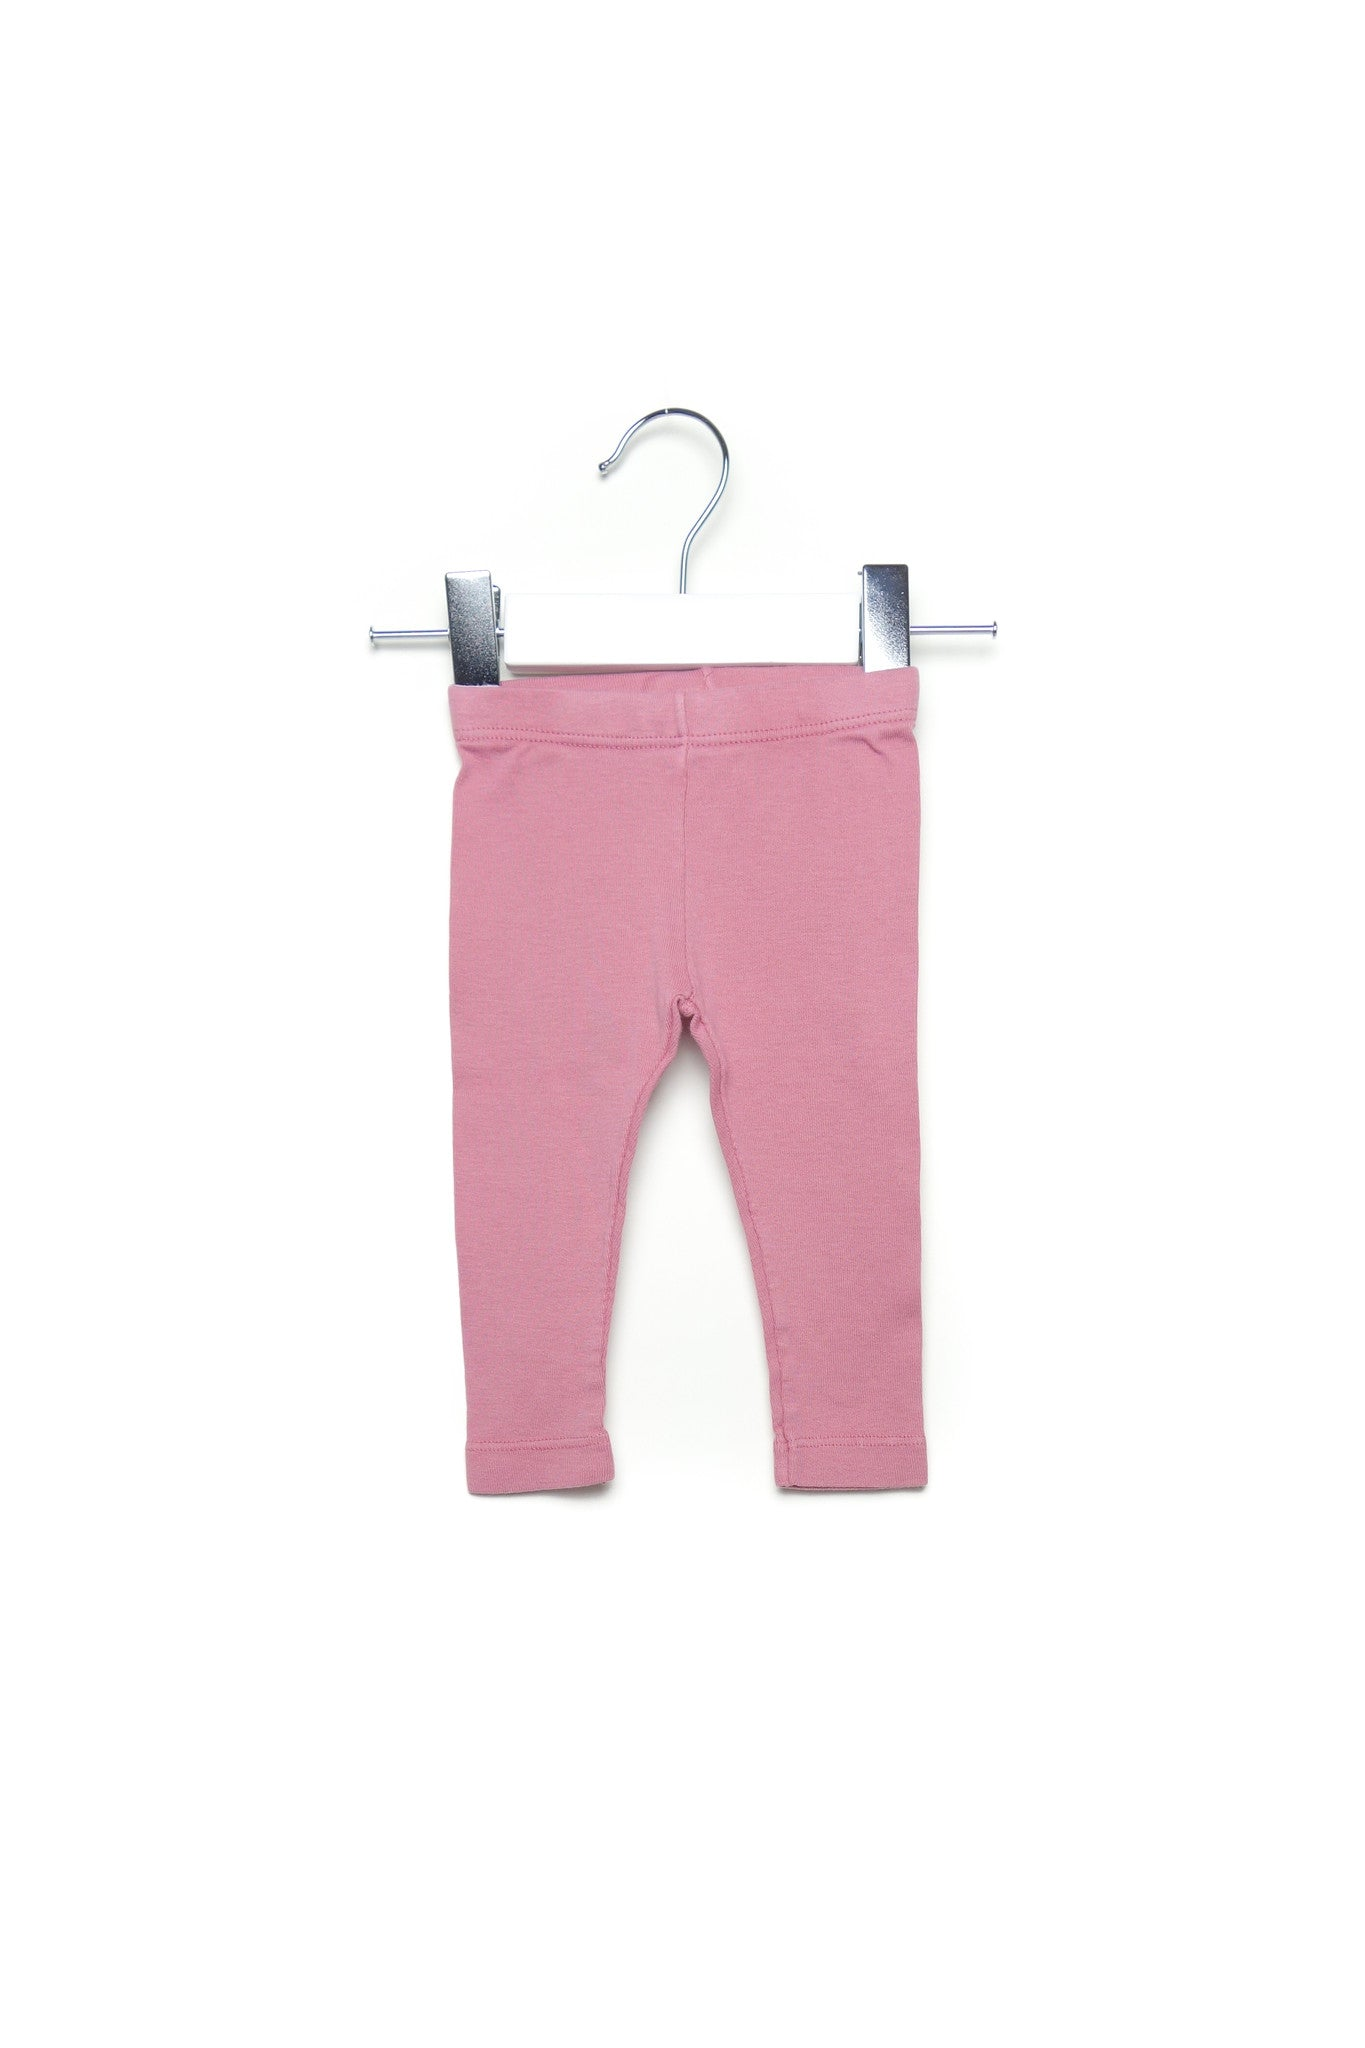 10001430~Pants 0-3M, Peek at Retykle - Online Baby & Kids Clothing Up to 90% Off